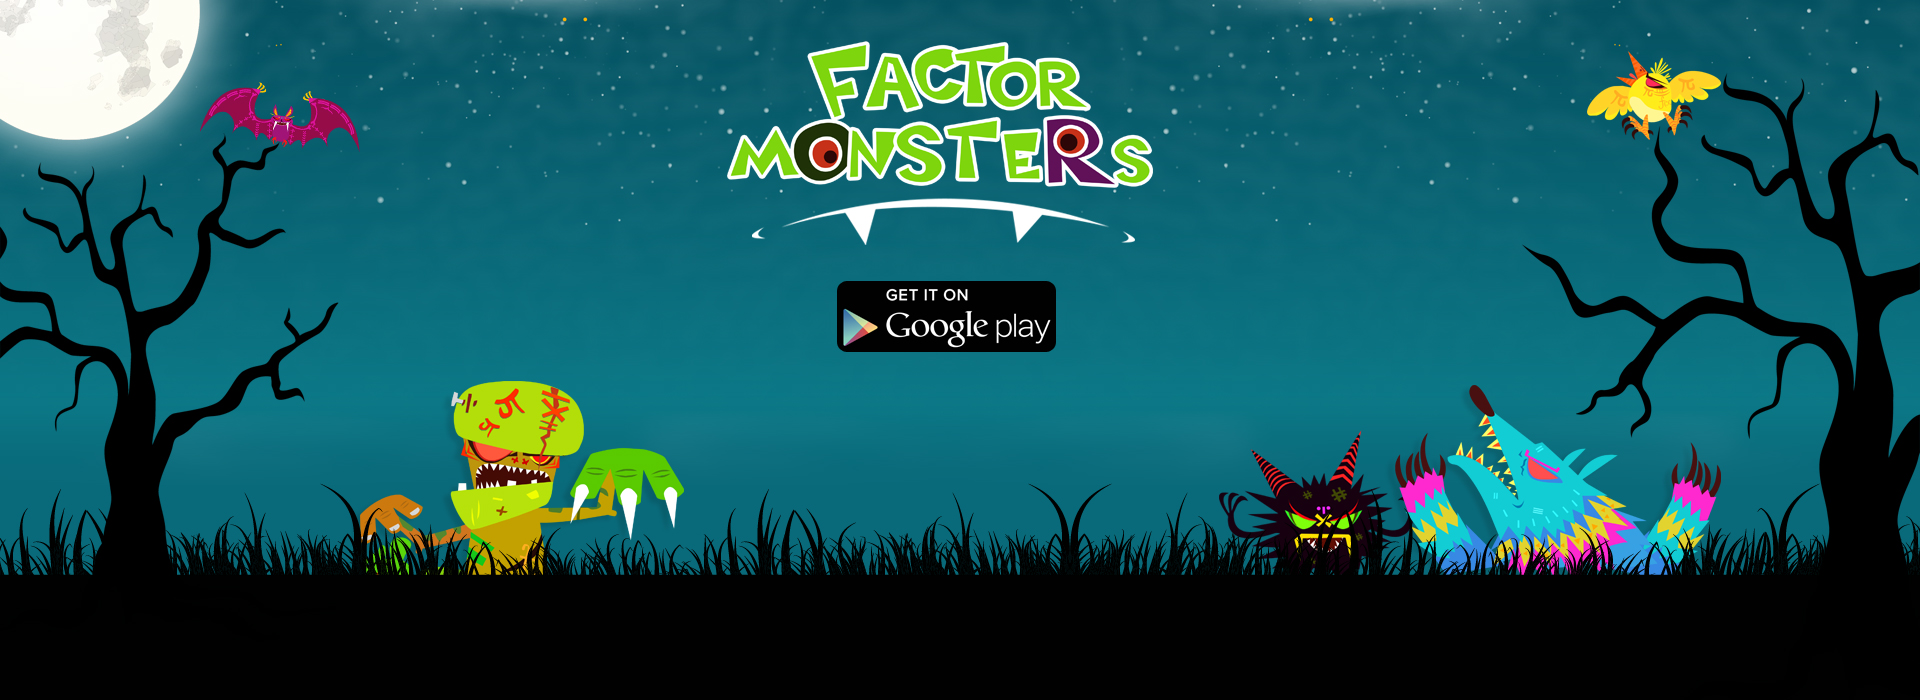 Factor Monsters android game